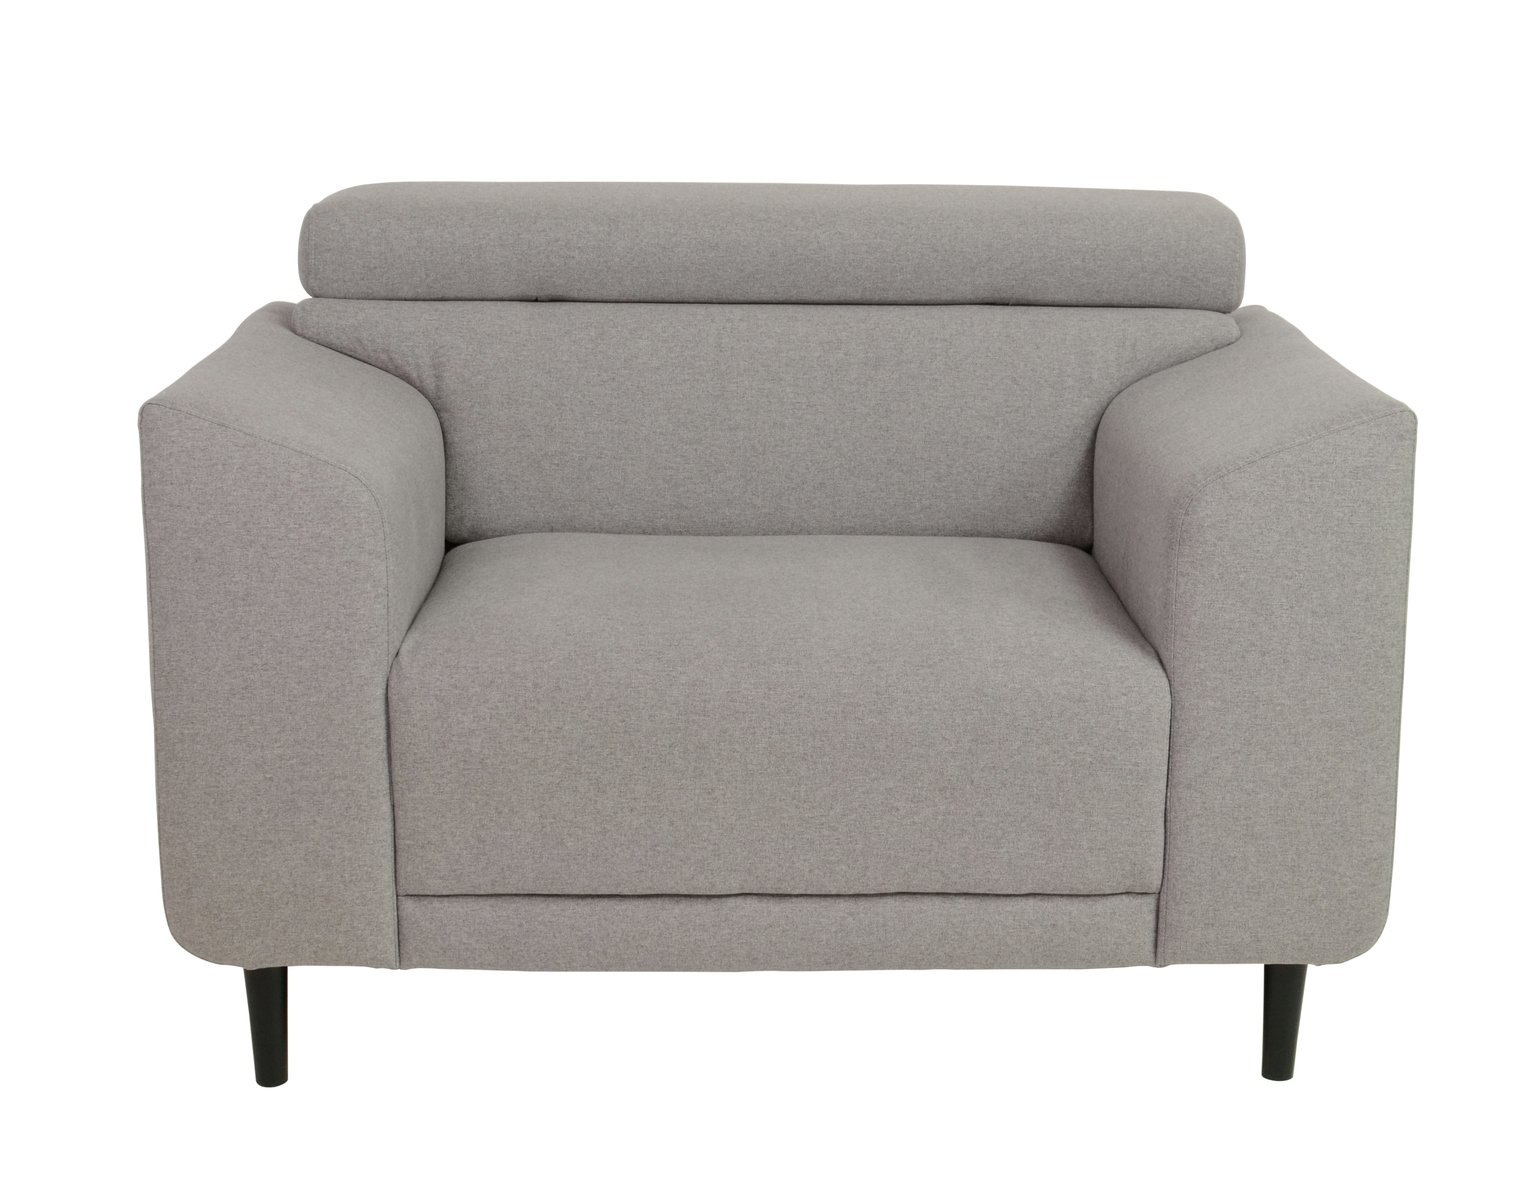 Argos Home Jonas Fabric Armchair - Light Grey